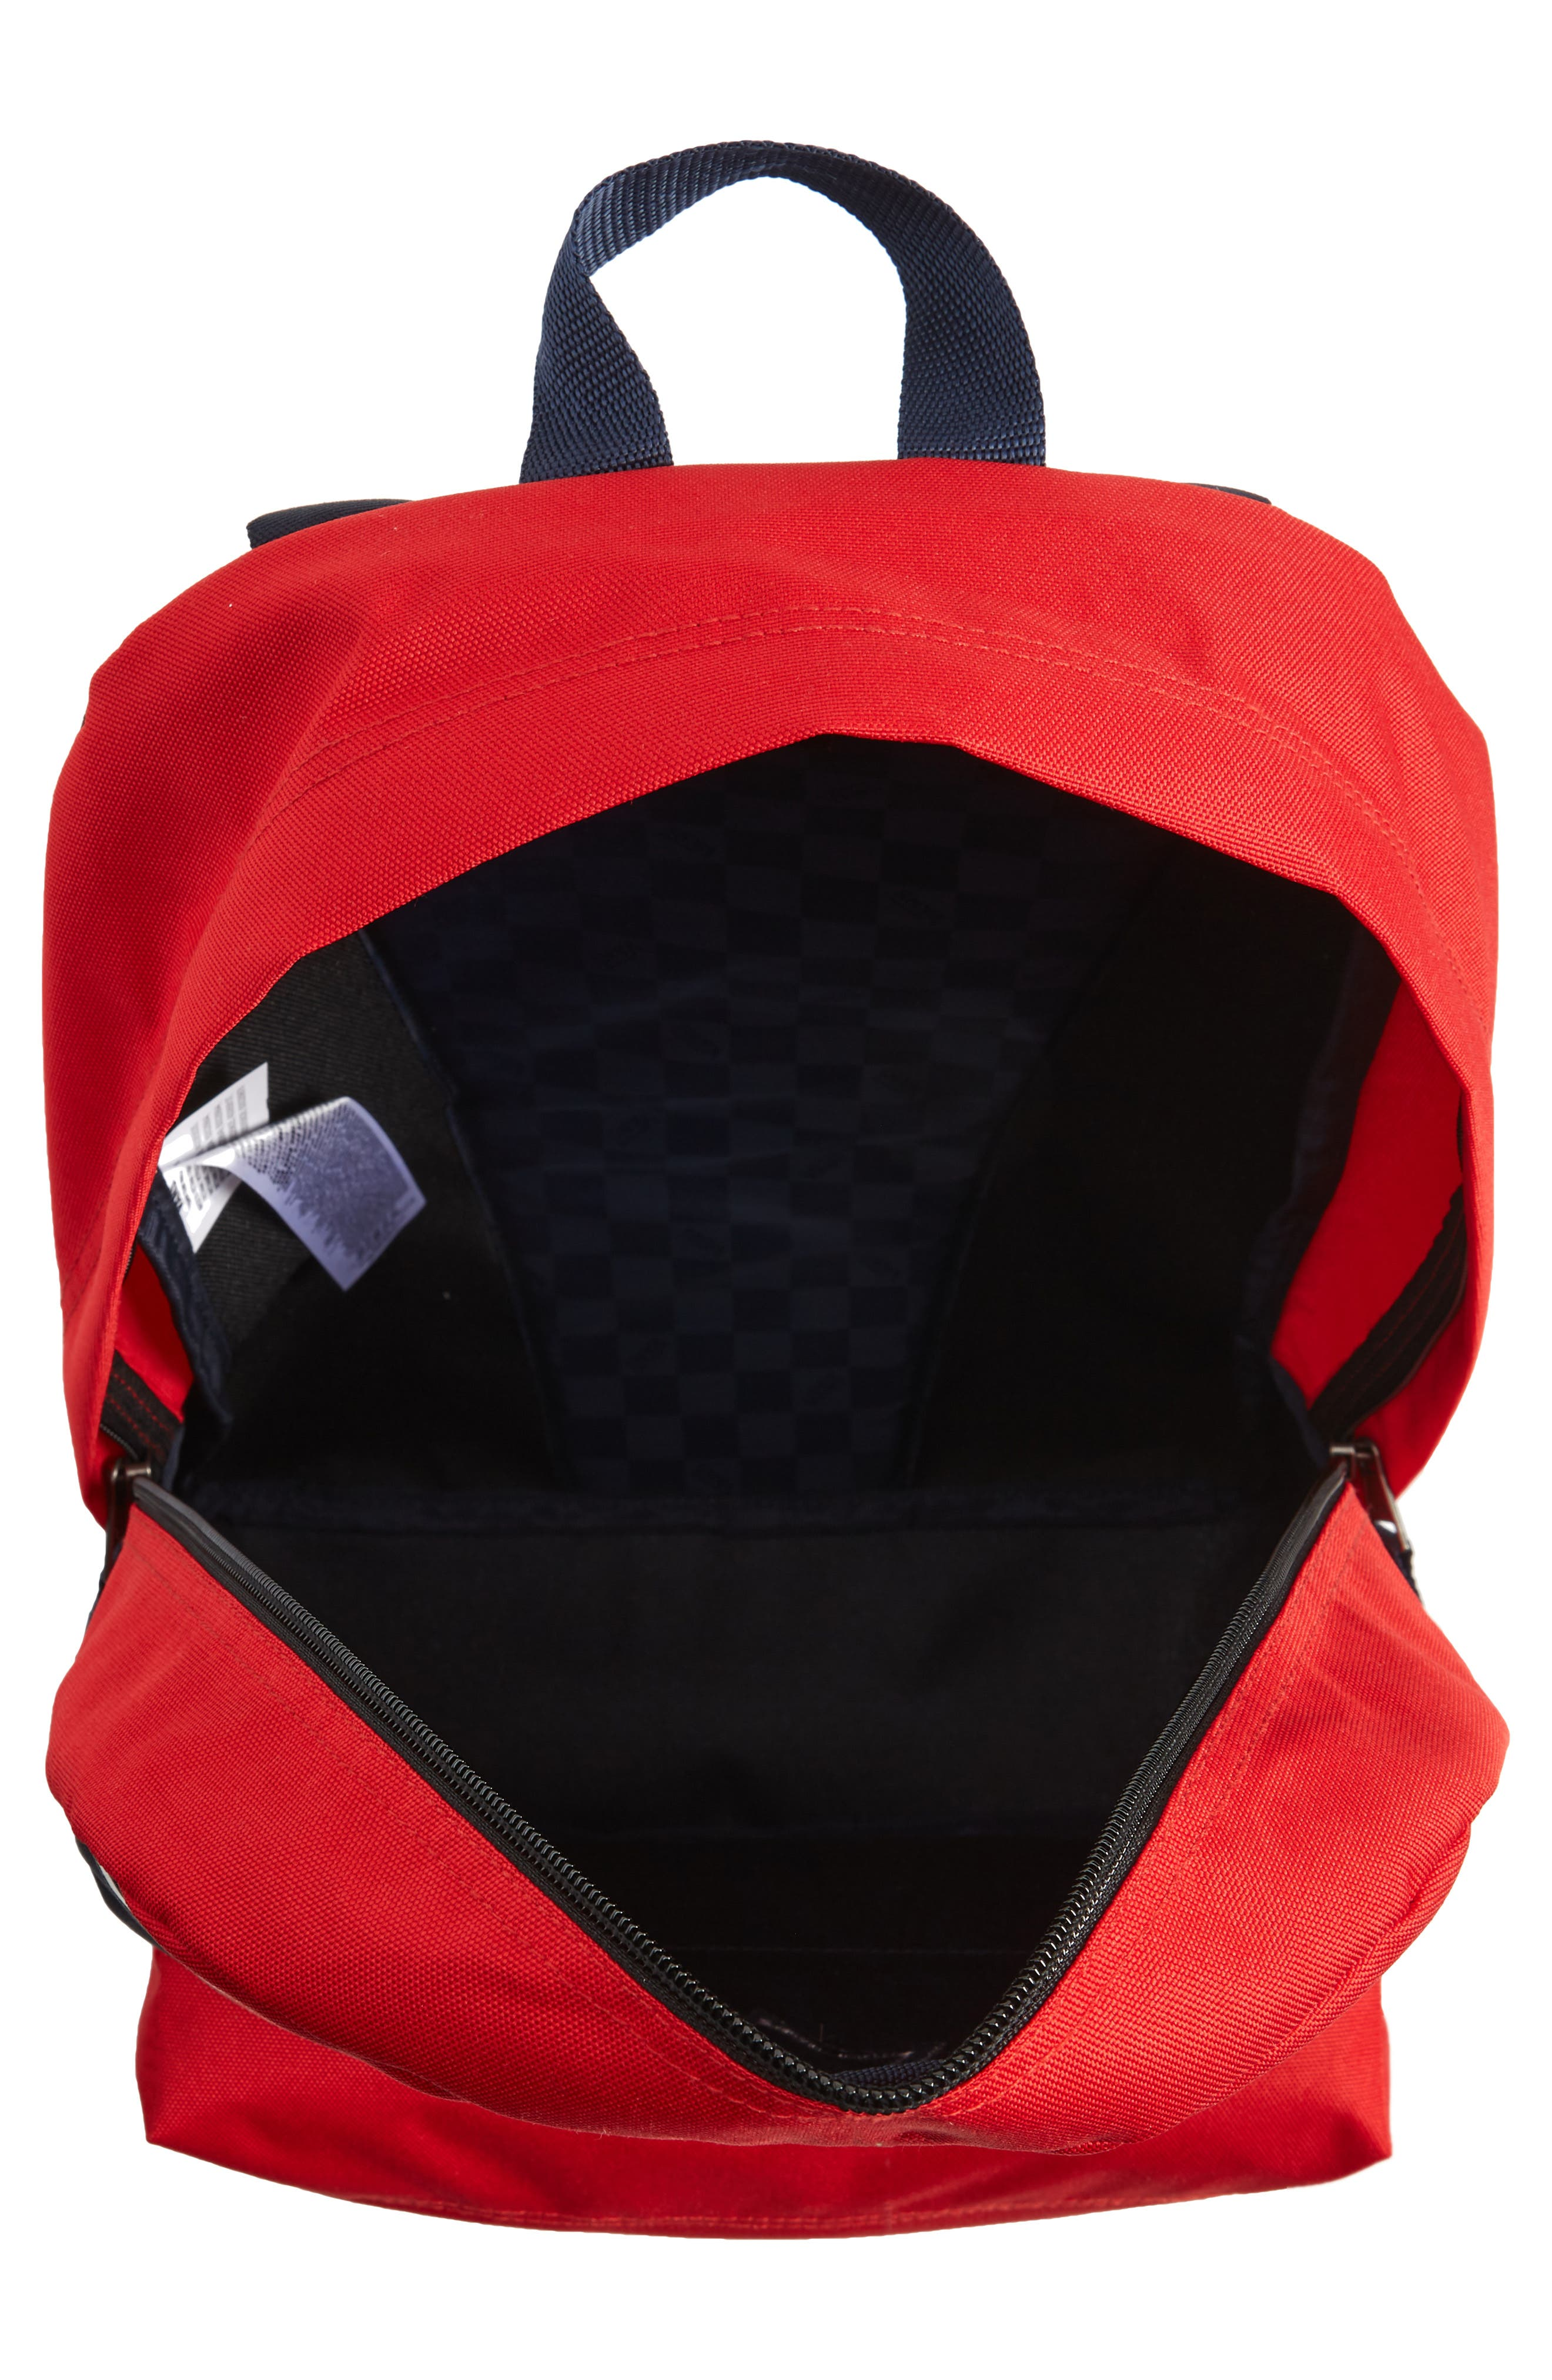 x Marvel<sup>®</sup> Captain Marvel Realm Backpack,                             Alternate thumbnail 3, color,                             601